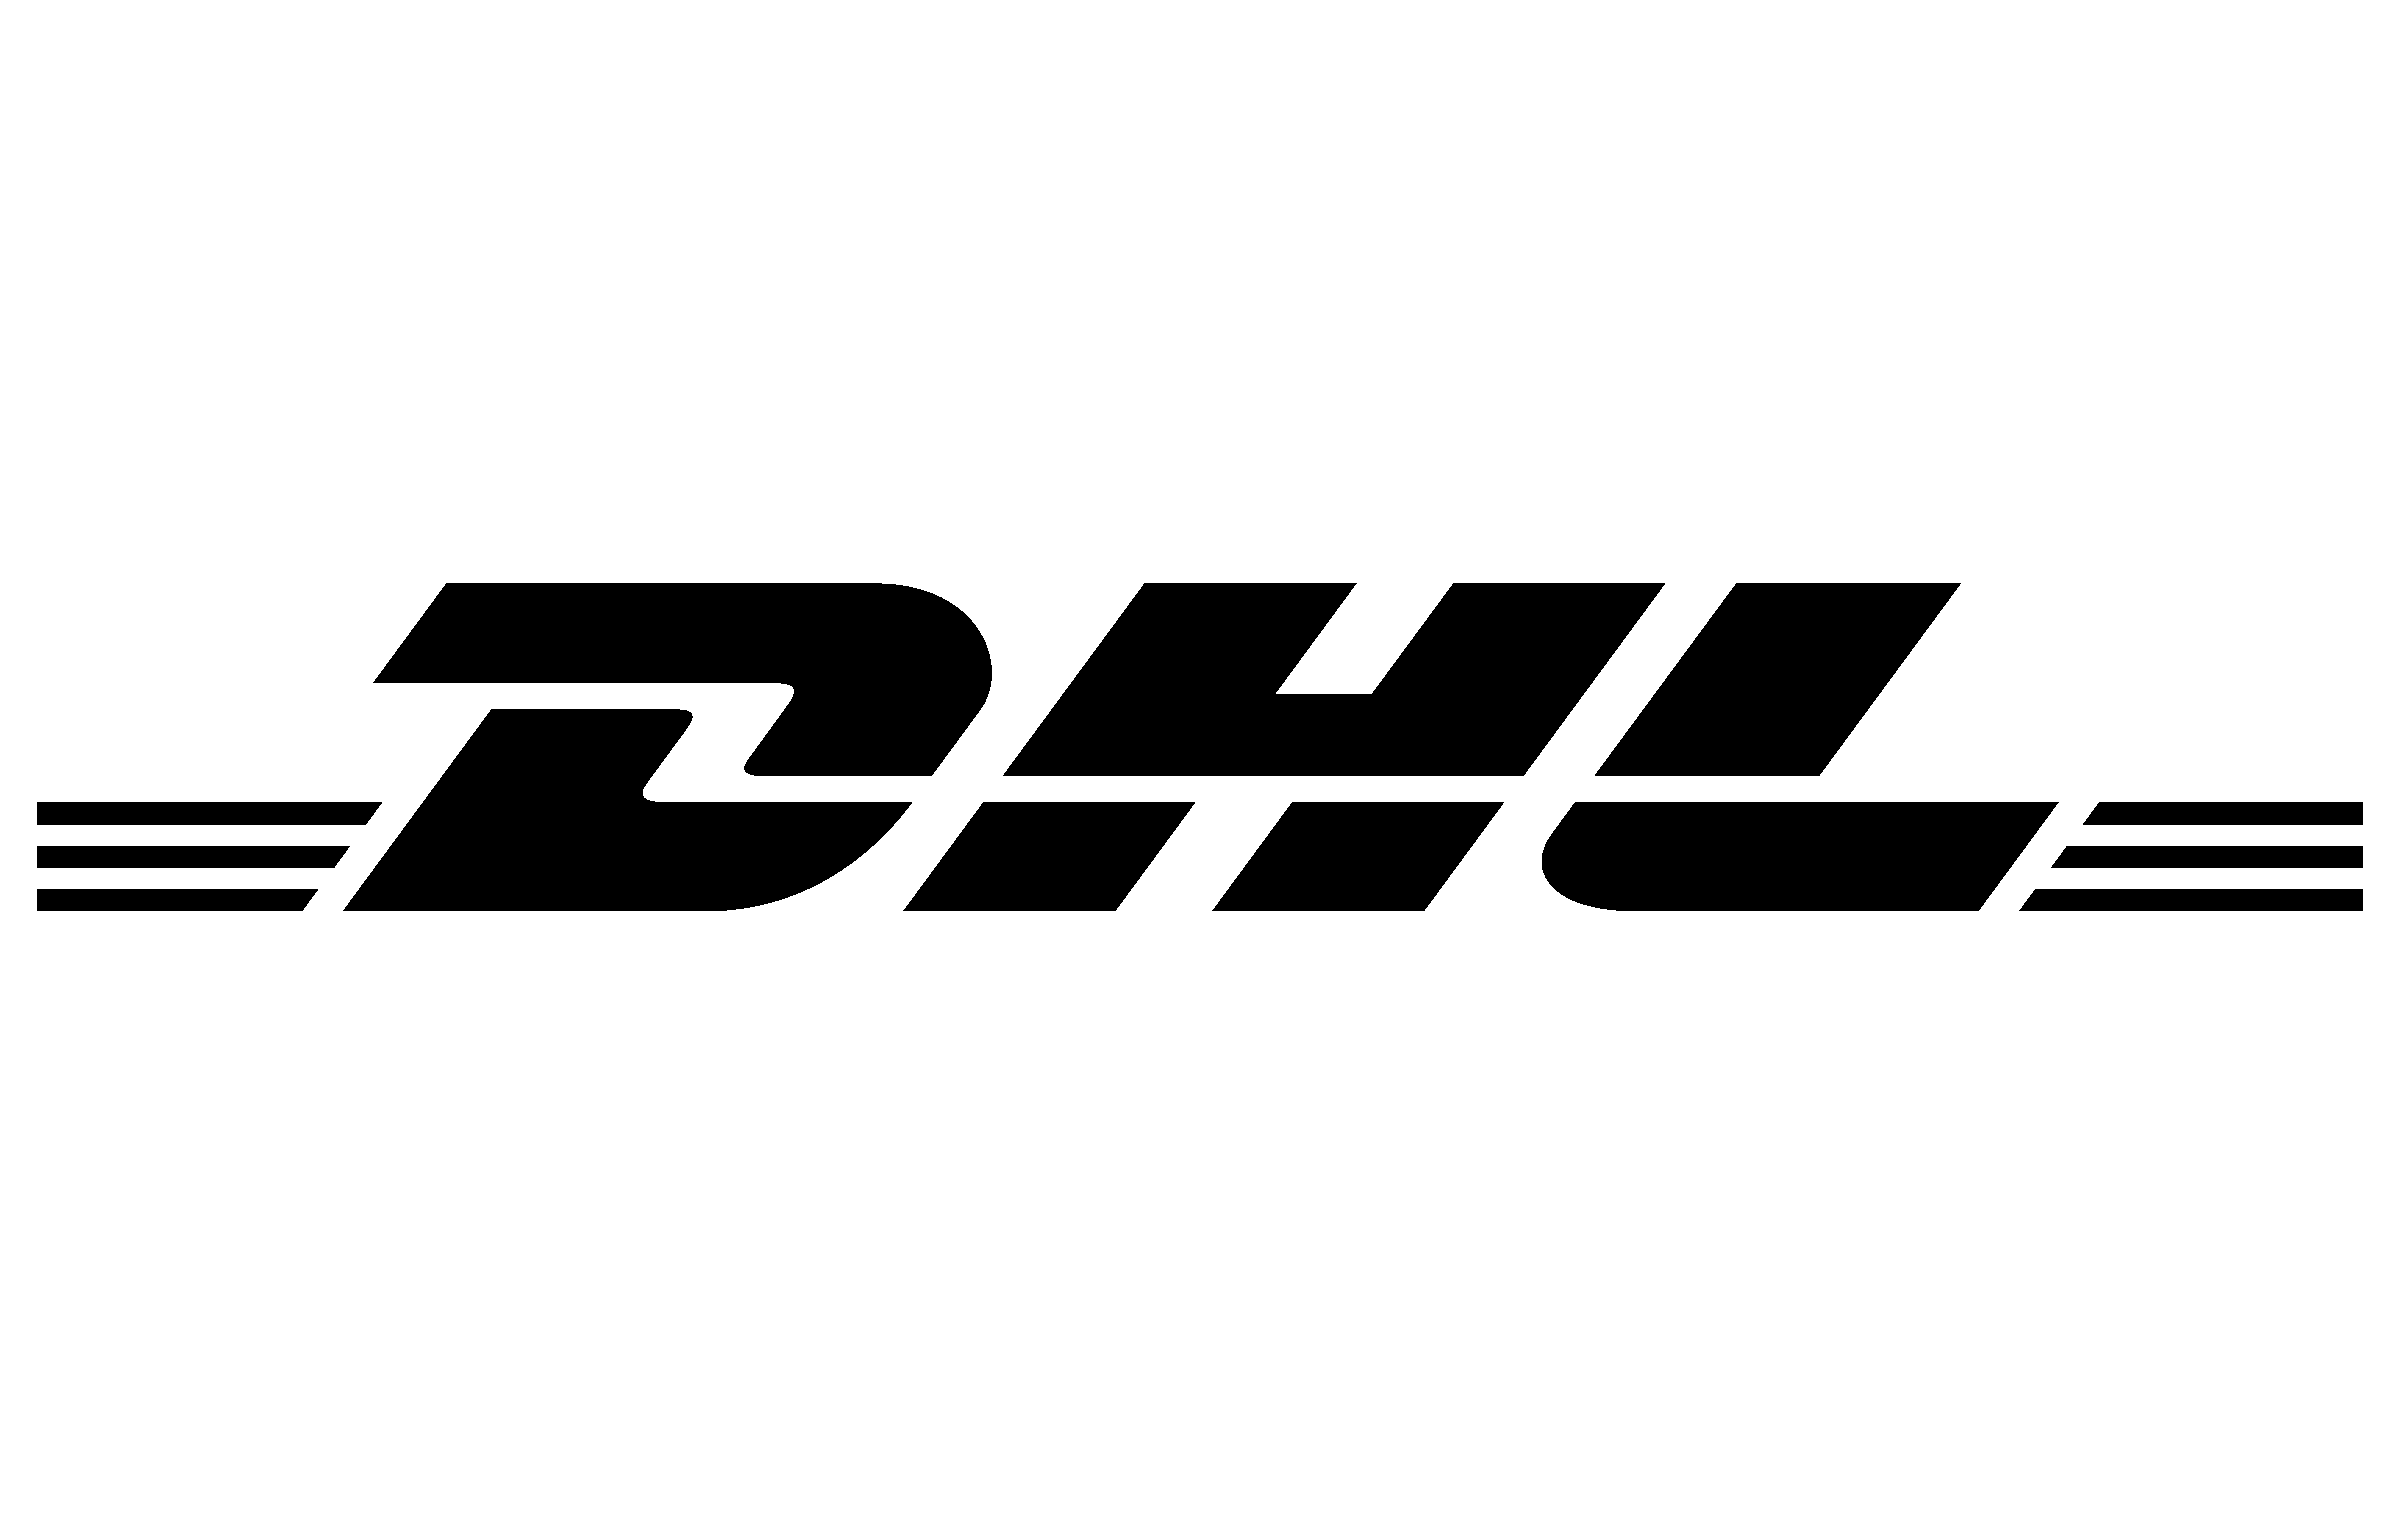 dhl-1-logo-black-and-white.png